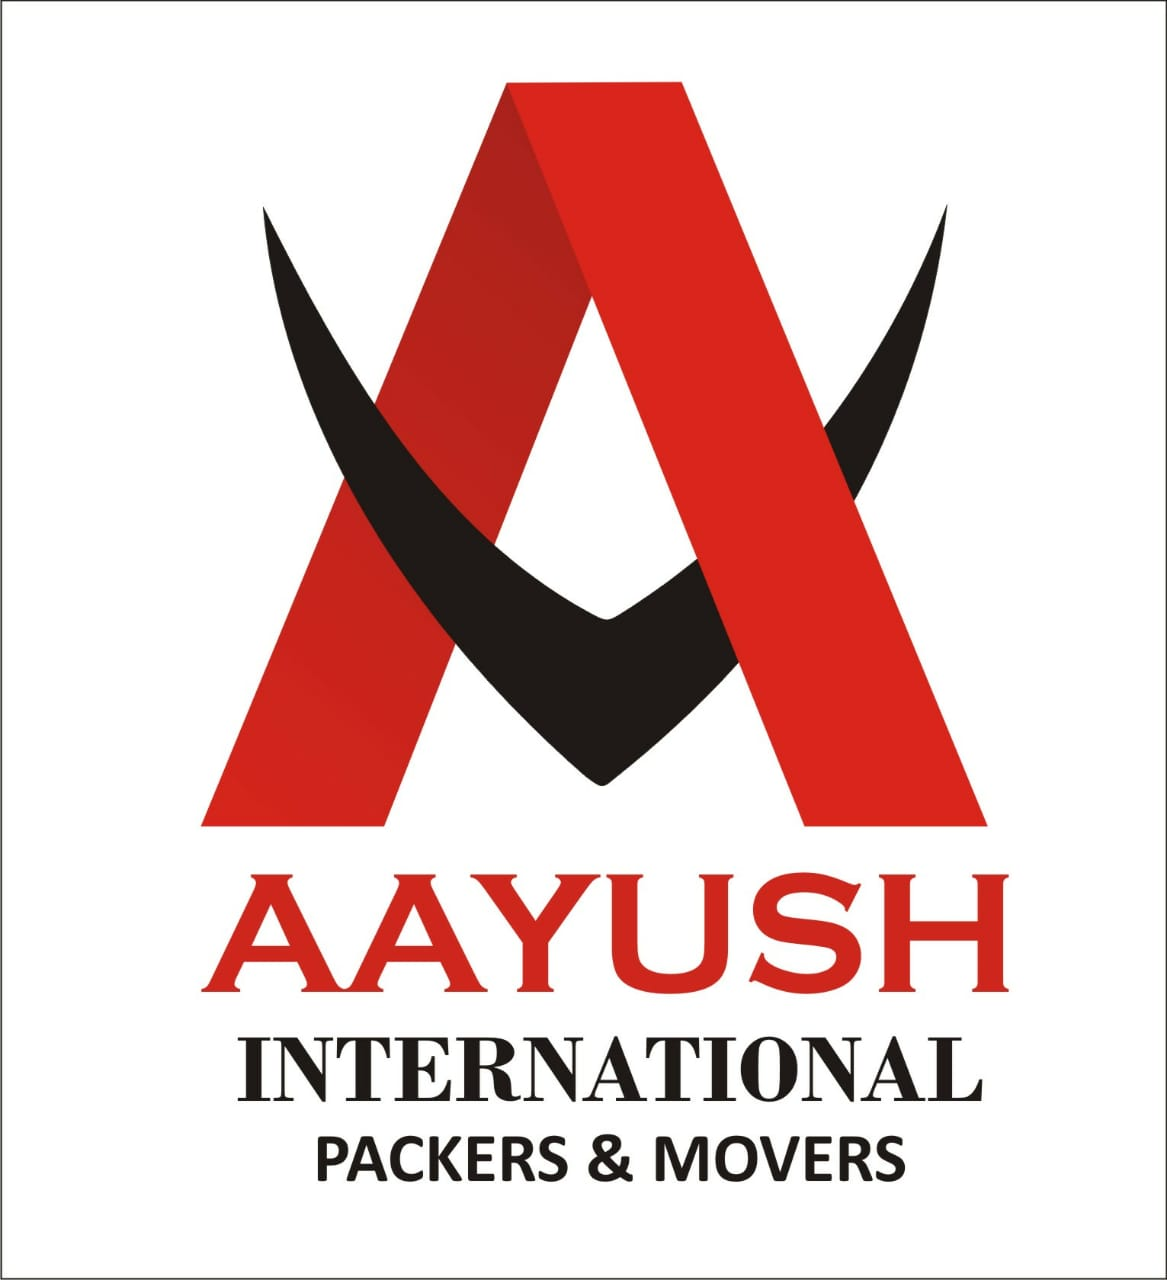 Aayush International Packers and Movers Hyderabad